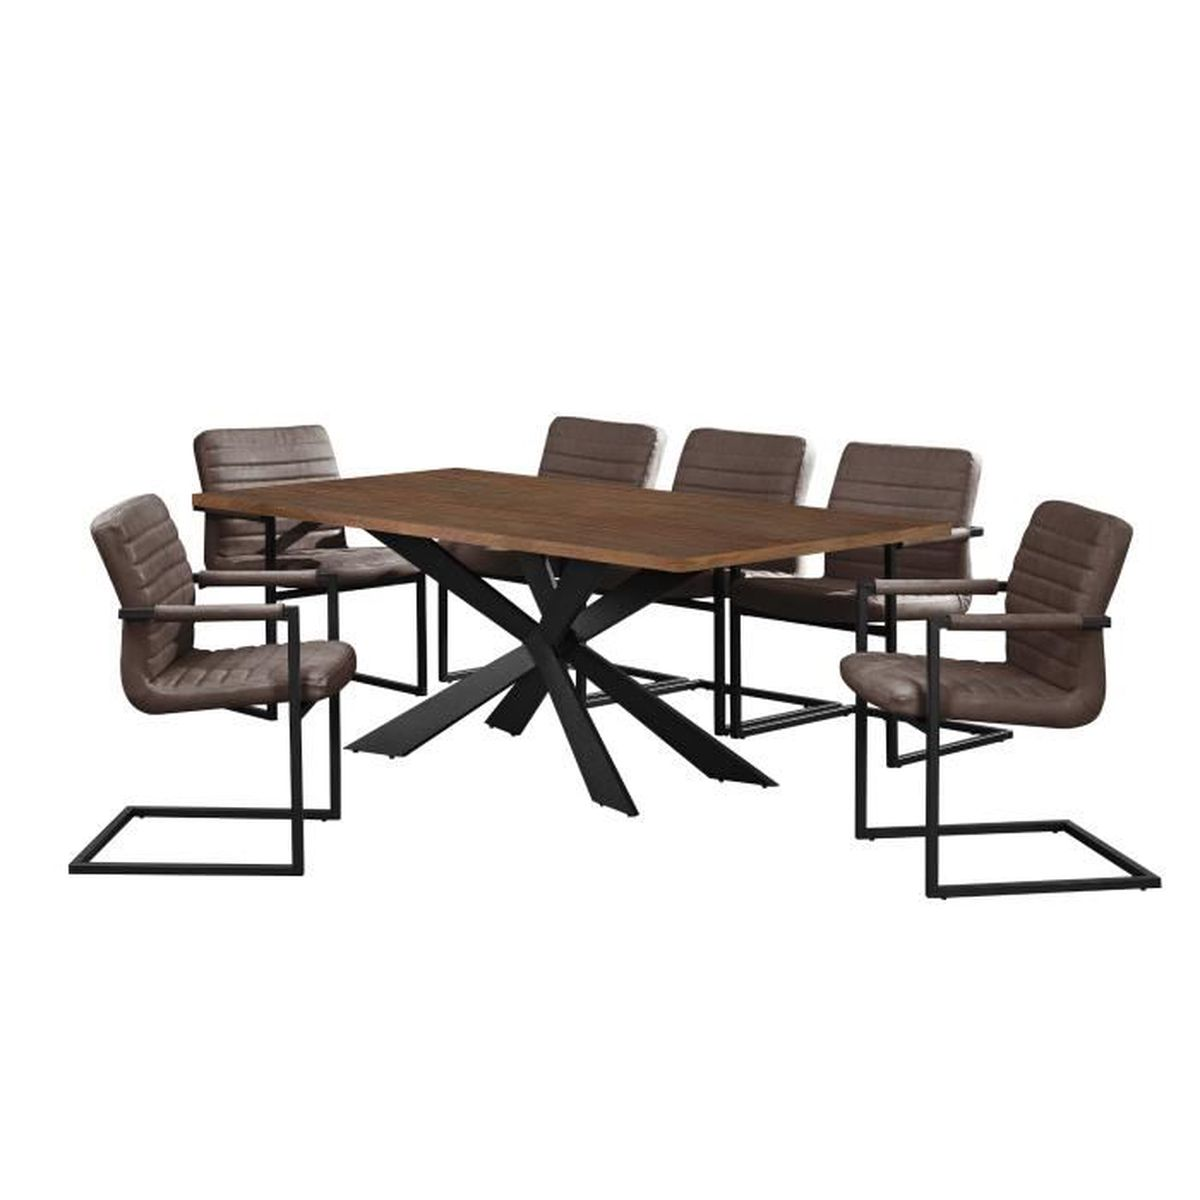 table de salle manger noix avec 6 chaises cantilever rembourr marron fonc 200x100cm. Black Bedroom Furniture Sets. Home Design Ideas